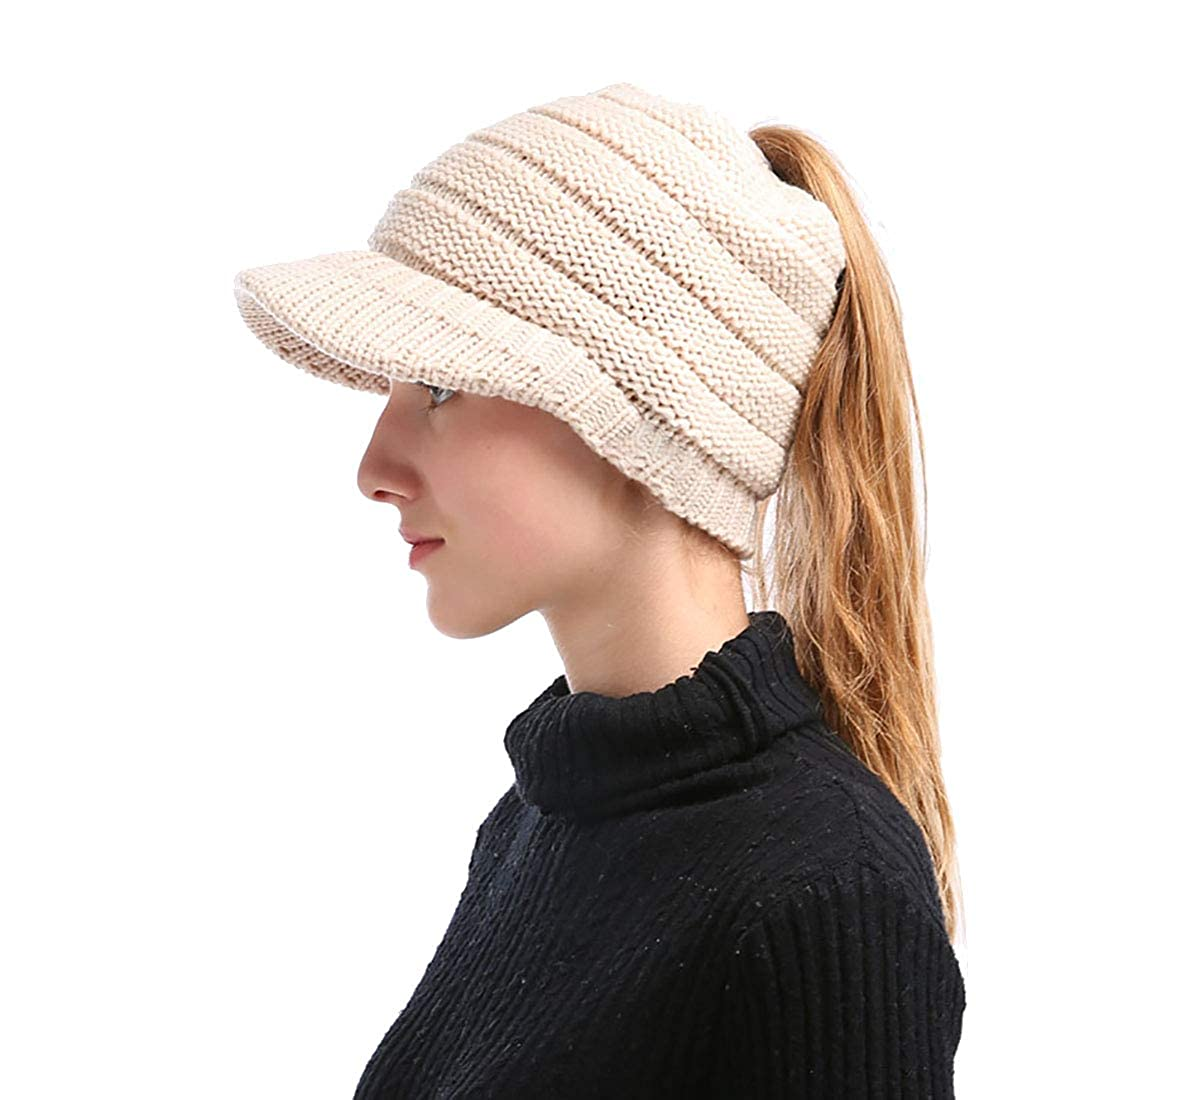 Sven Home Ponytail Hat Beanie Warm Knit Messy High Bun Ponytail Visor  Beanie Skullies Cap (Beige) at Amazon Women s Clothing store  5ca45d626e8